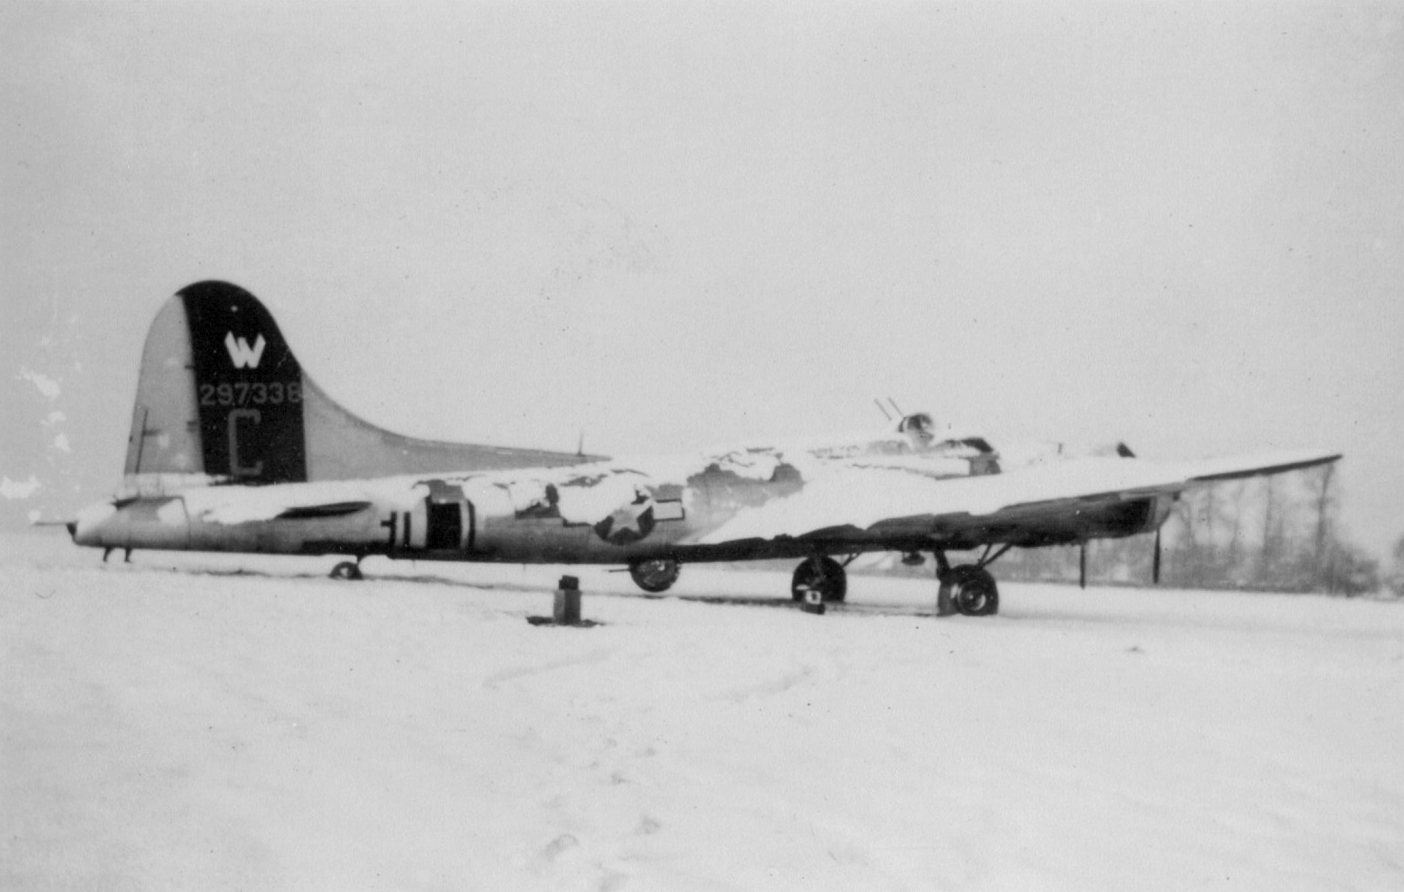 B-17 #42-97338 / The Tarheel Lemon